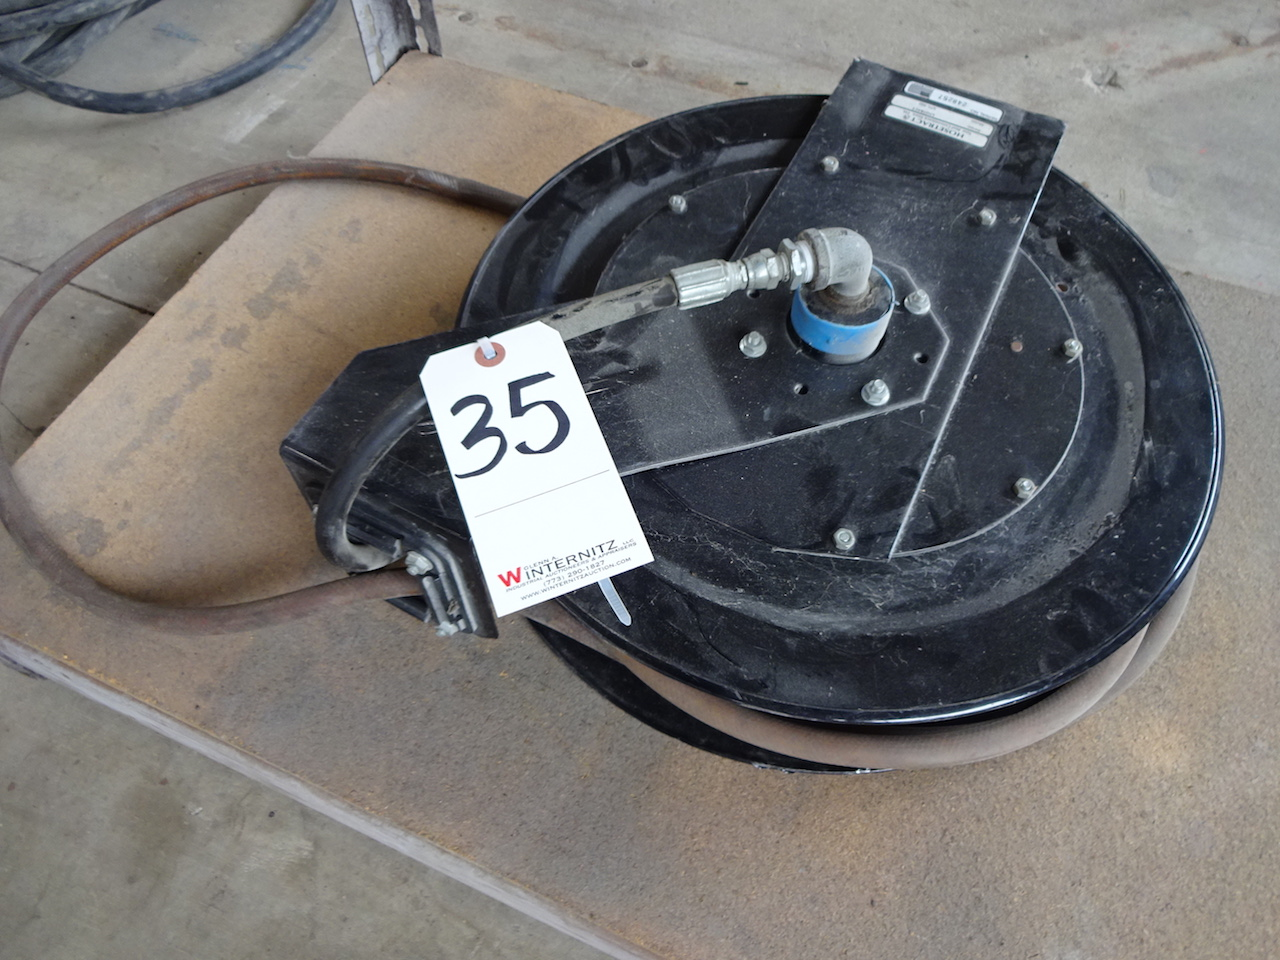 Lot 35 - HOSETRACT UNITRACT MODEL UTL-350 HOSE REEL S/N 248257